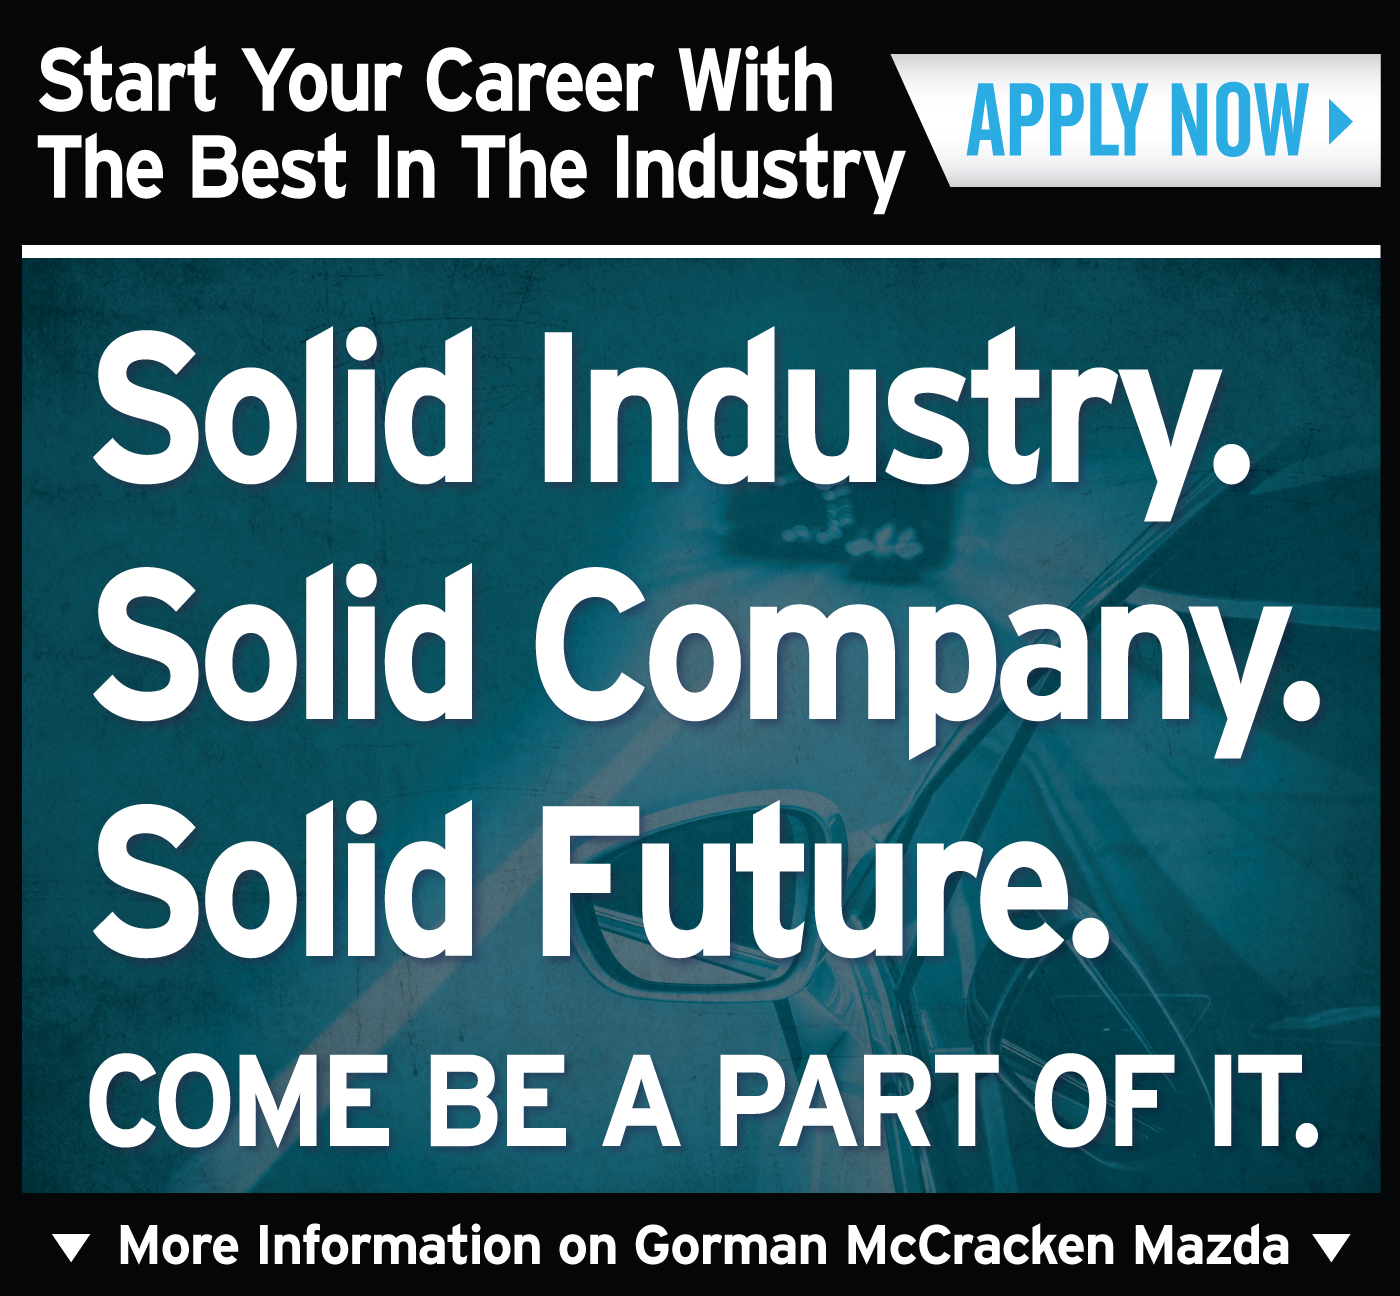 Start Your Career with Gorman McCracken Mazda